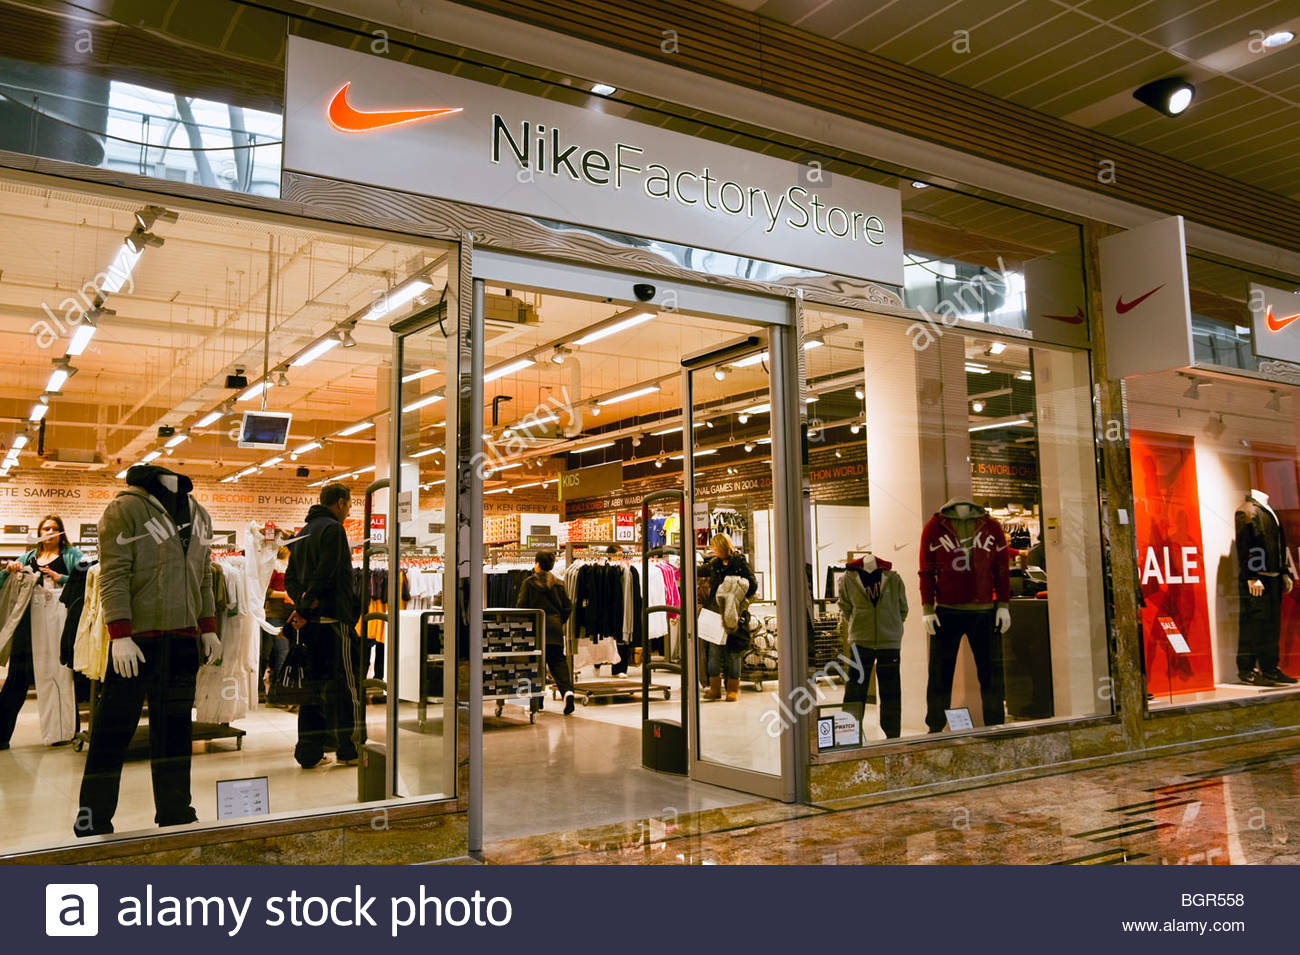 Nike factory store shop at gloucester quays designer for Outlet design